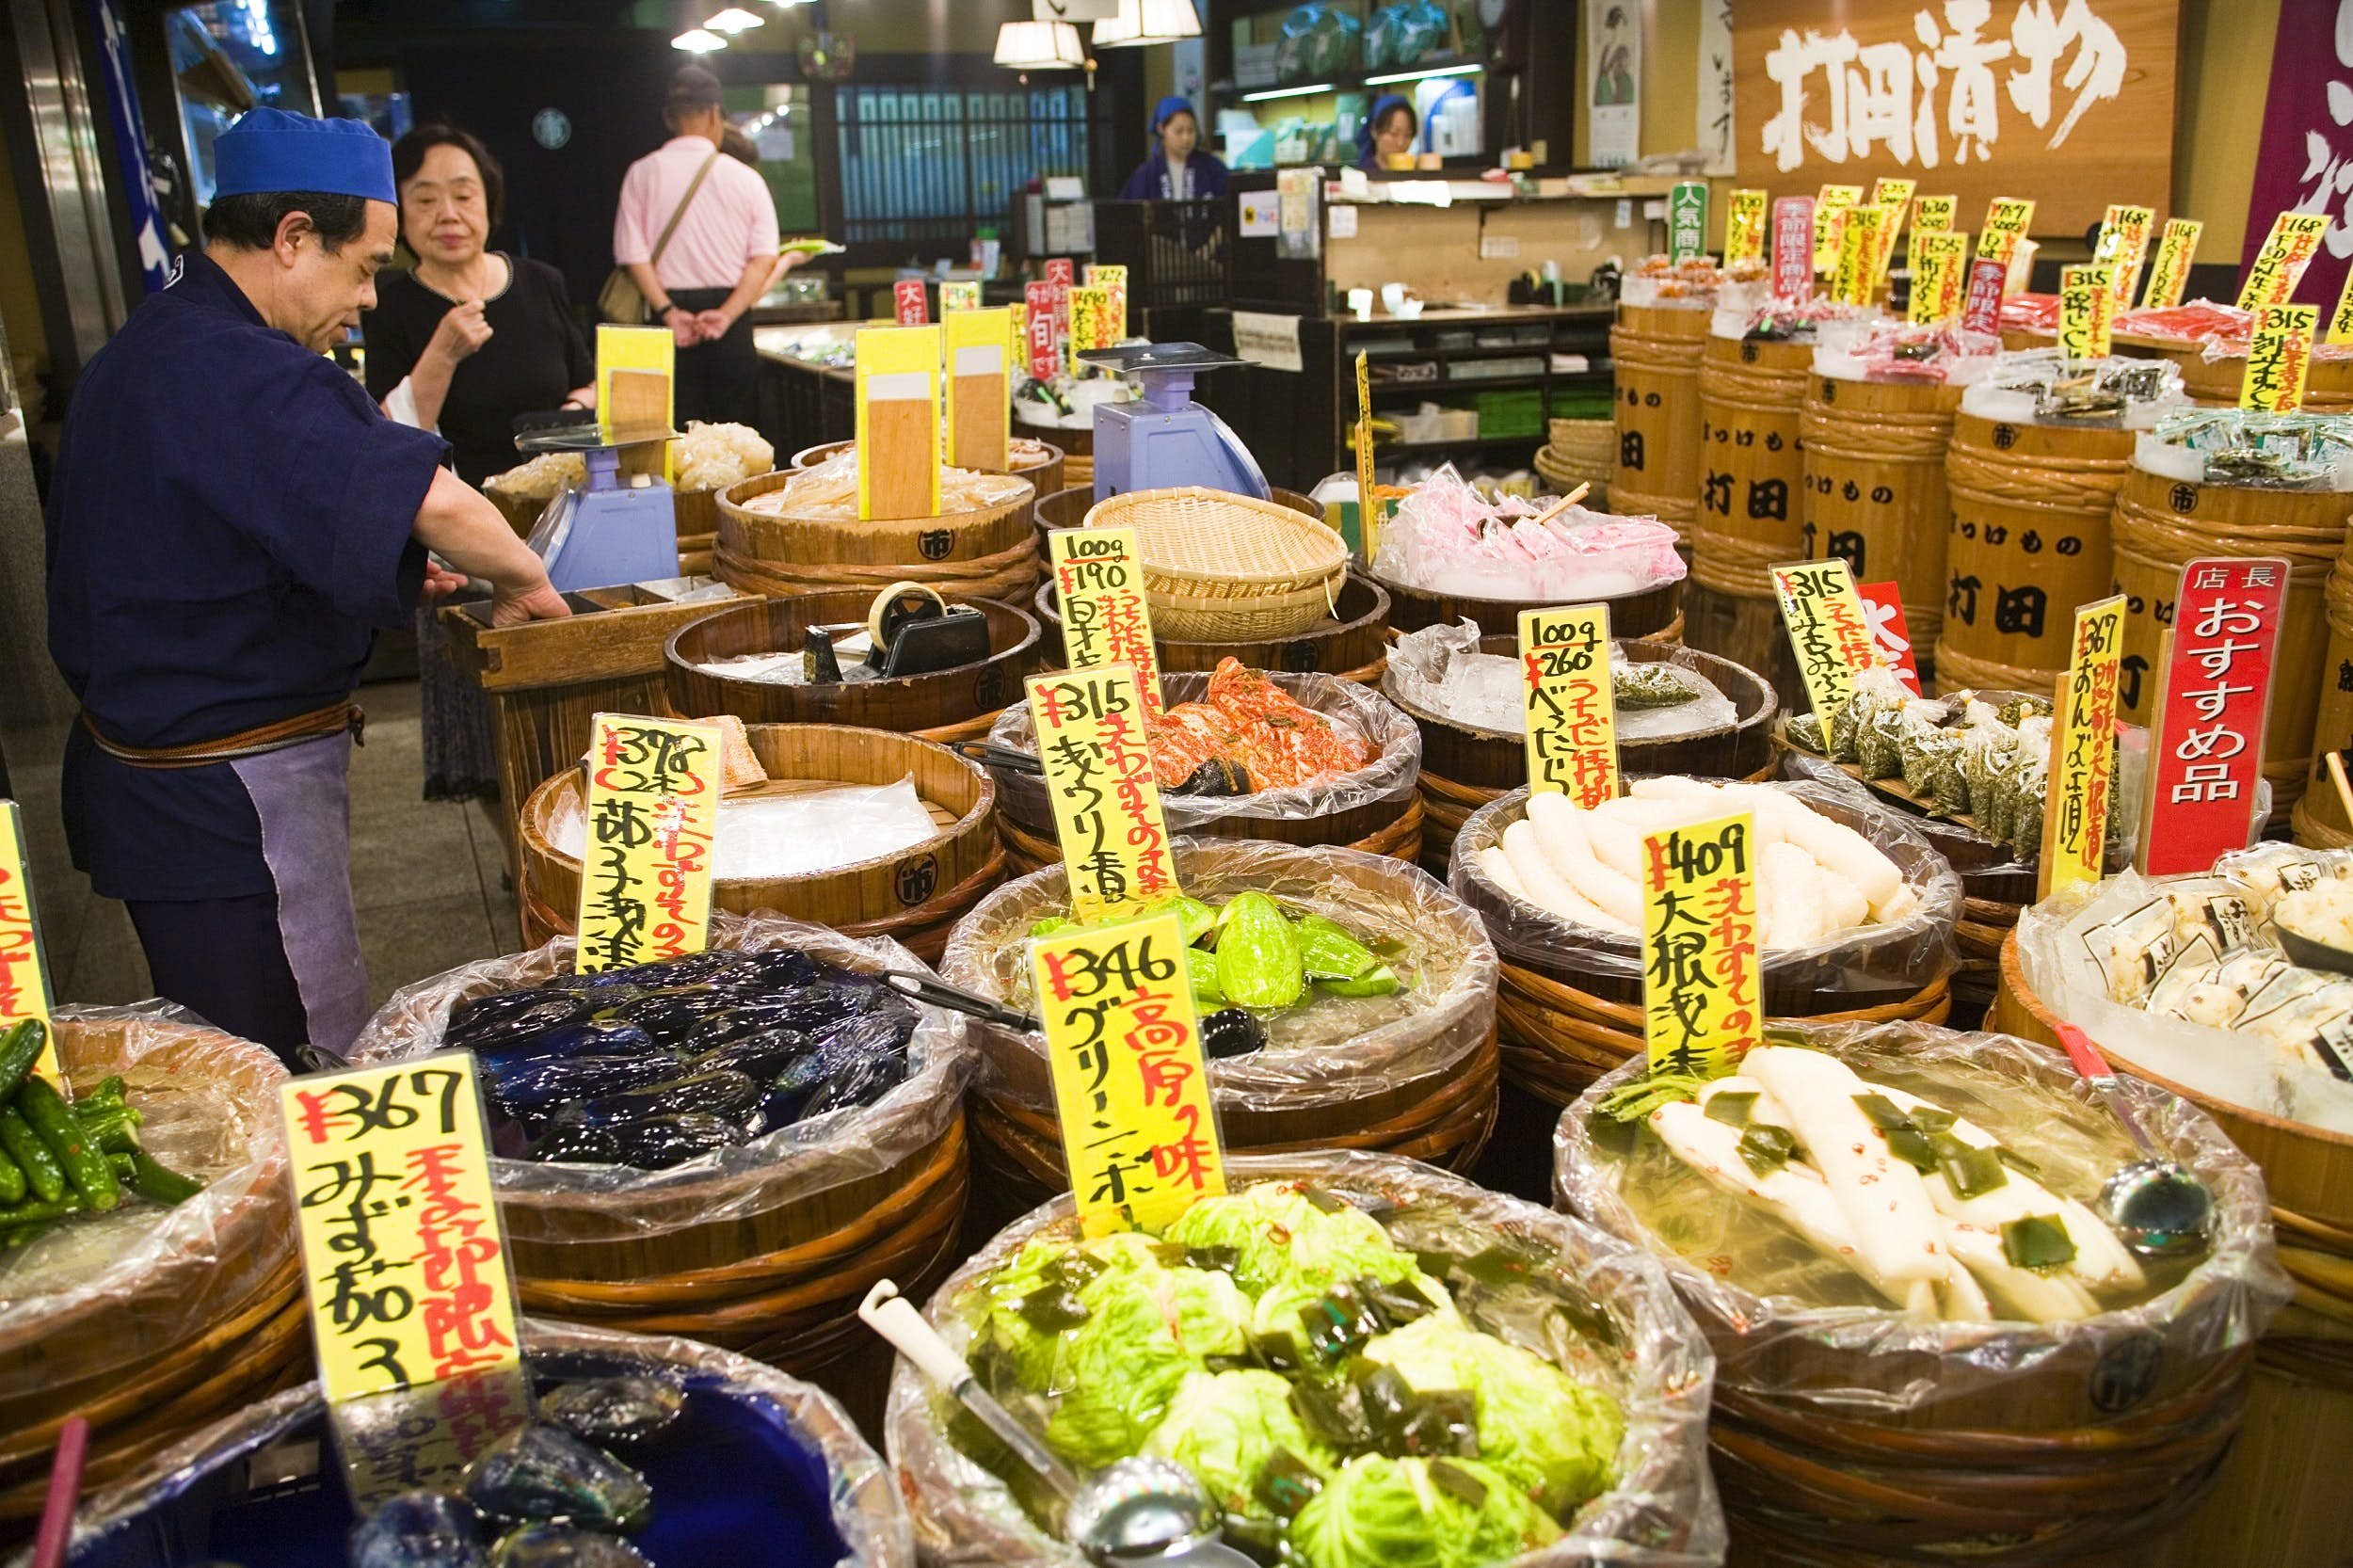 Numerous wooden tubs are filled with vegetables at the Nishiki Market; yellow labels with black-and-red Japanese writing denote the cost and contents of each.